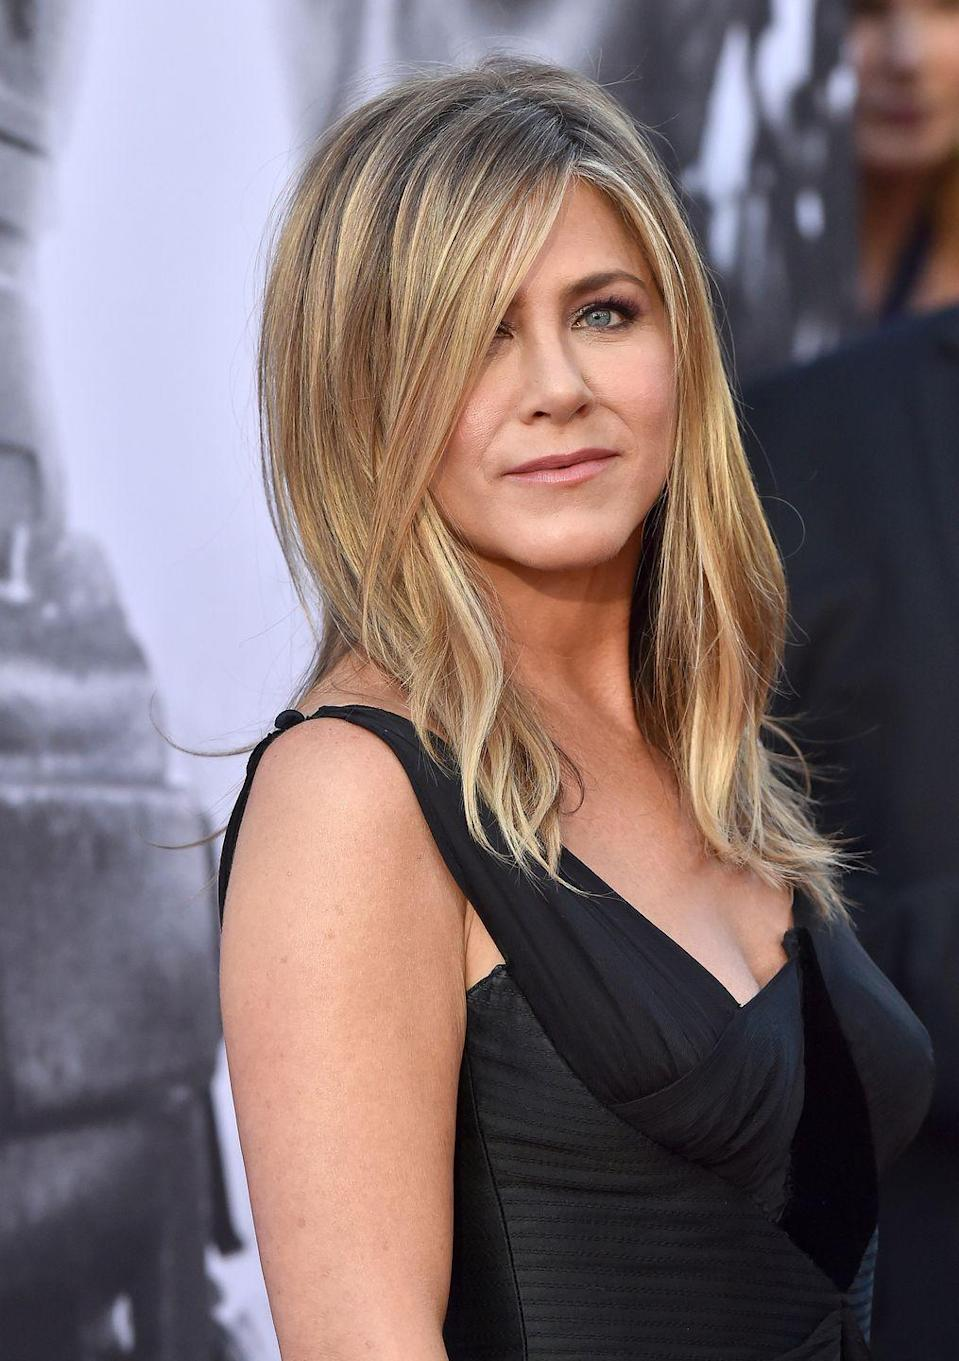 <p>Jen told <em>People</em> that she's big into taking a spin-yoga class several times a week, which is 25 to 30 minutes of spinning and then 30 to 40 minutes of yoga.</p>